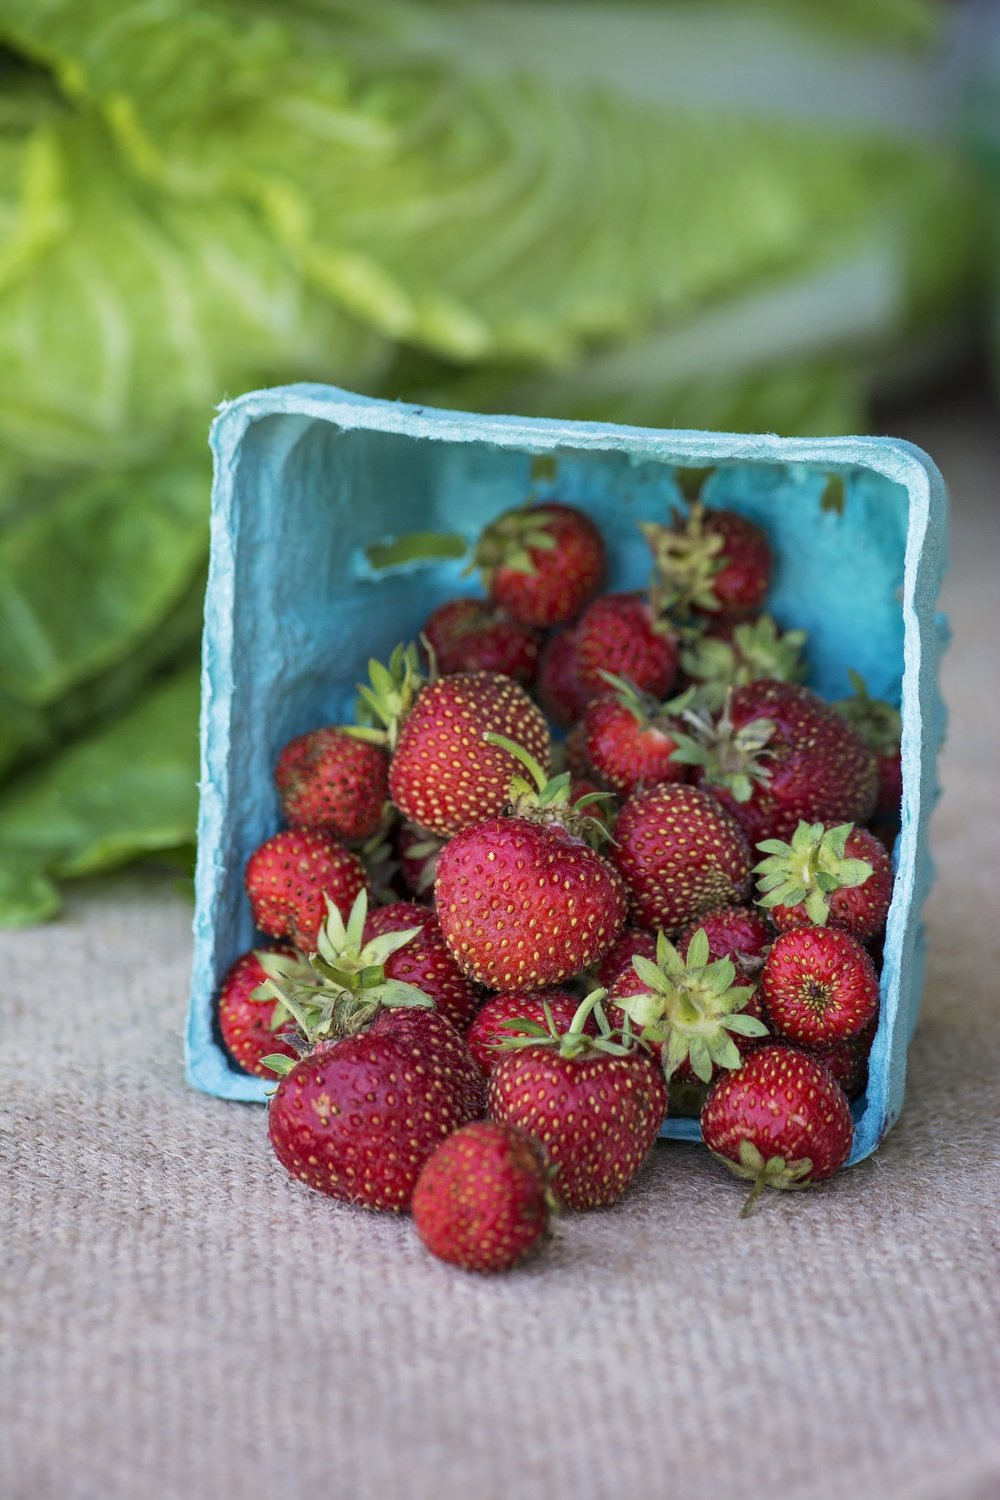 kristine_strawberries_spiritedtable_photot1.jpg